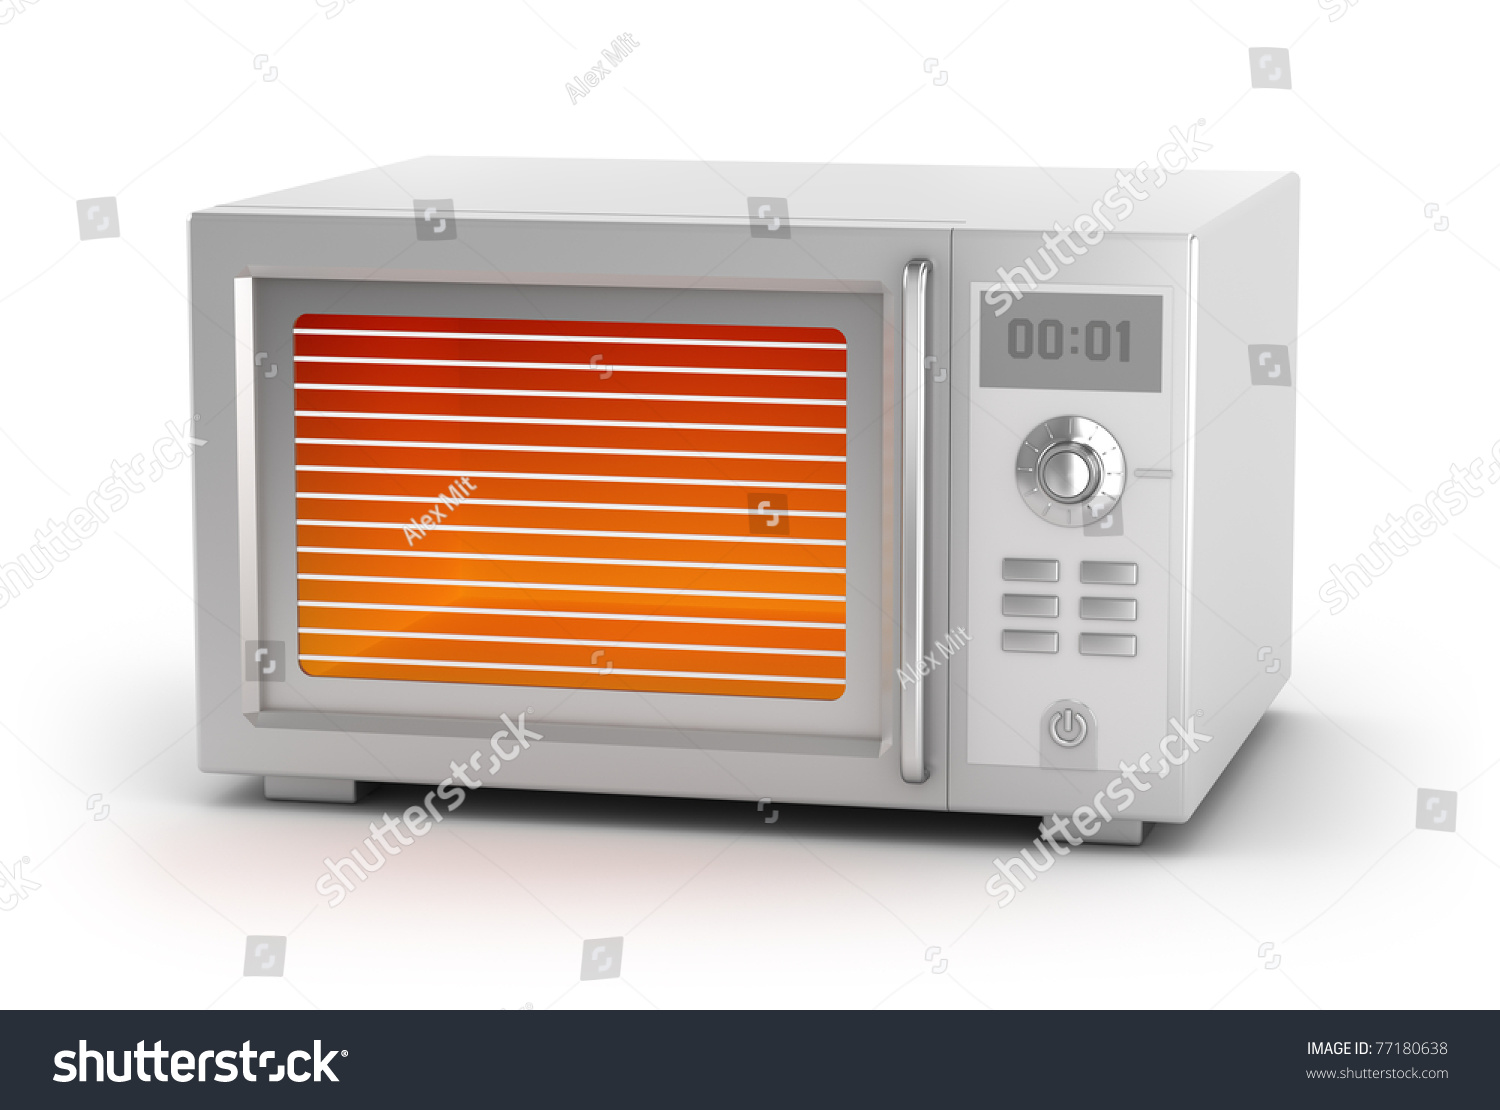 Yellow Microwave Oven ~ Microwave oven isolated on white my stock illustration